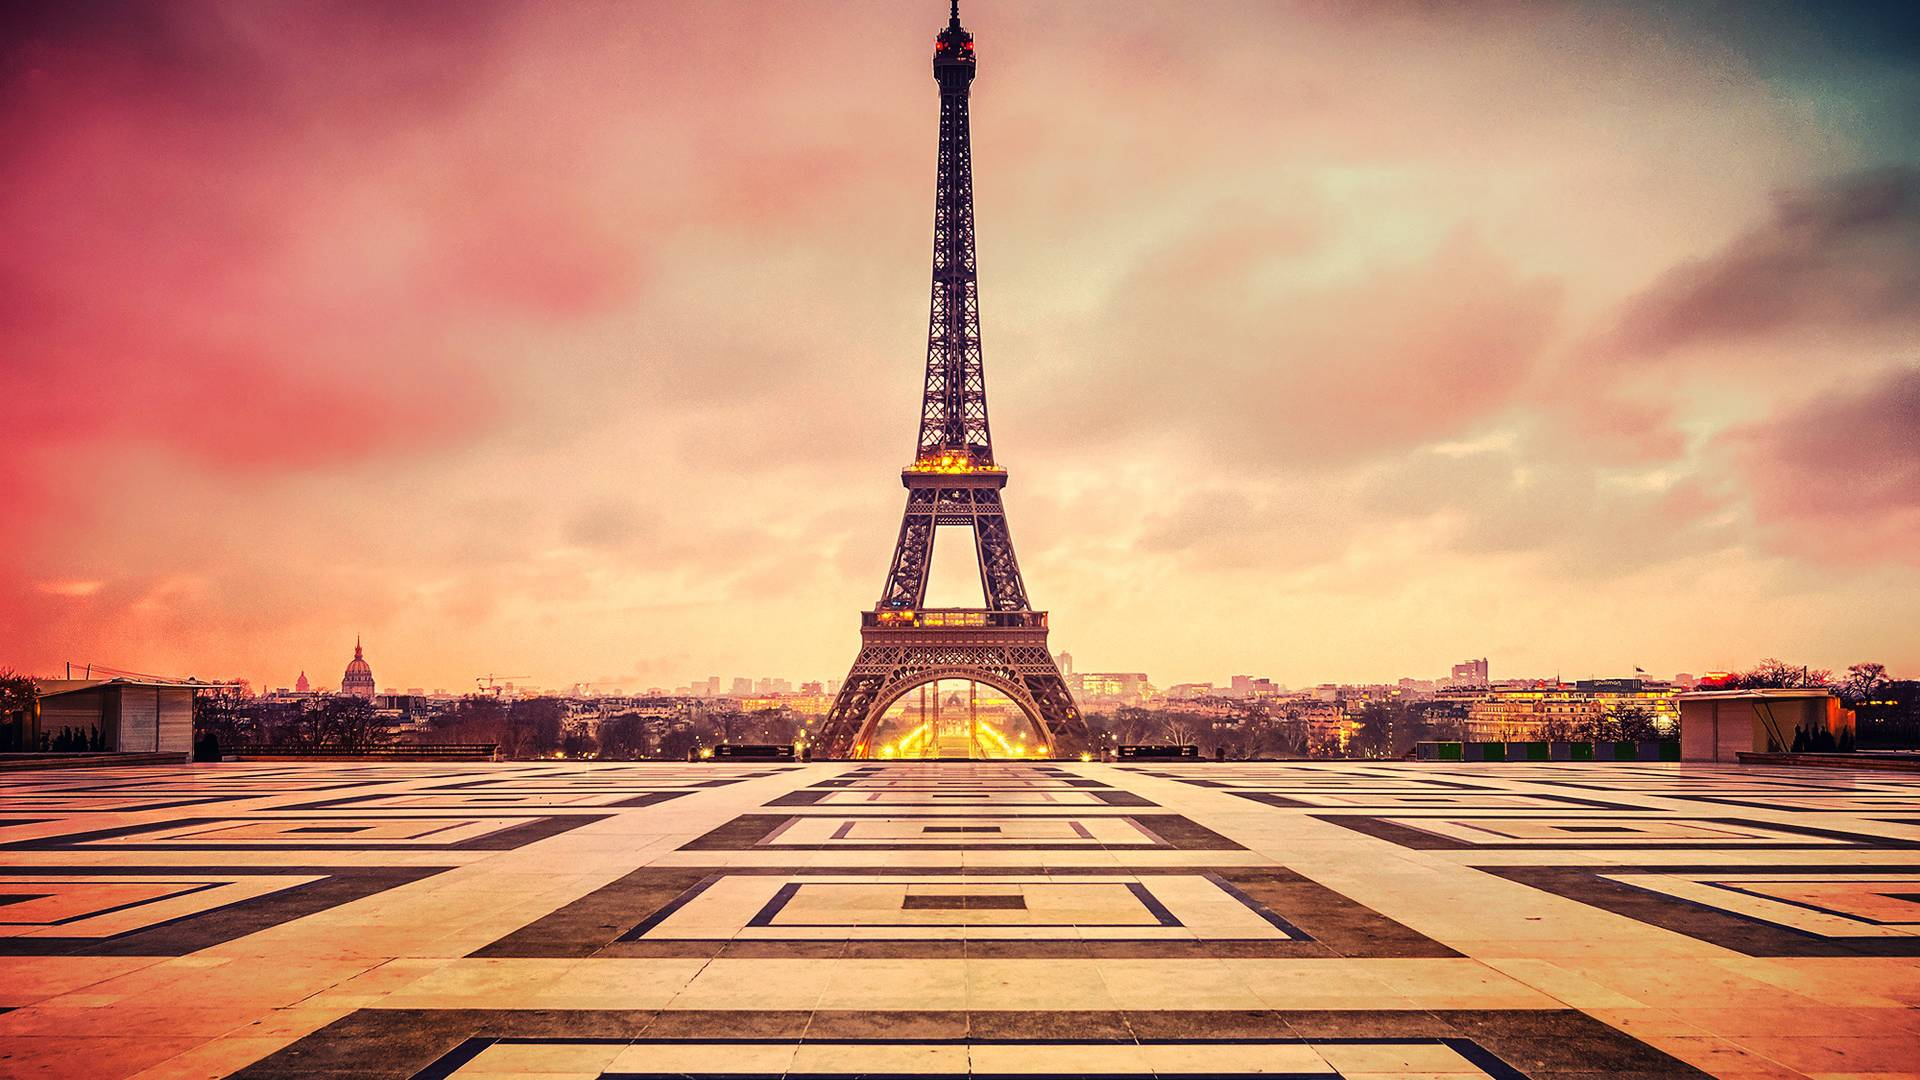 Awesome Eiffel Tower Paris City Wallpaper High Definition Wallpaper